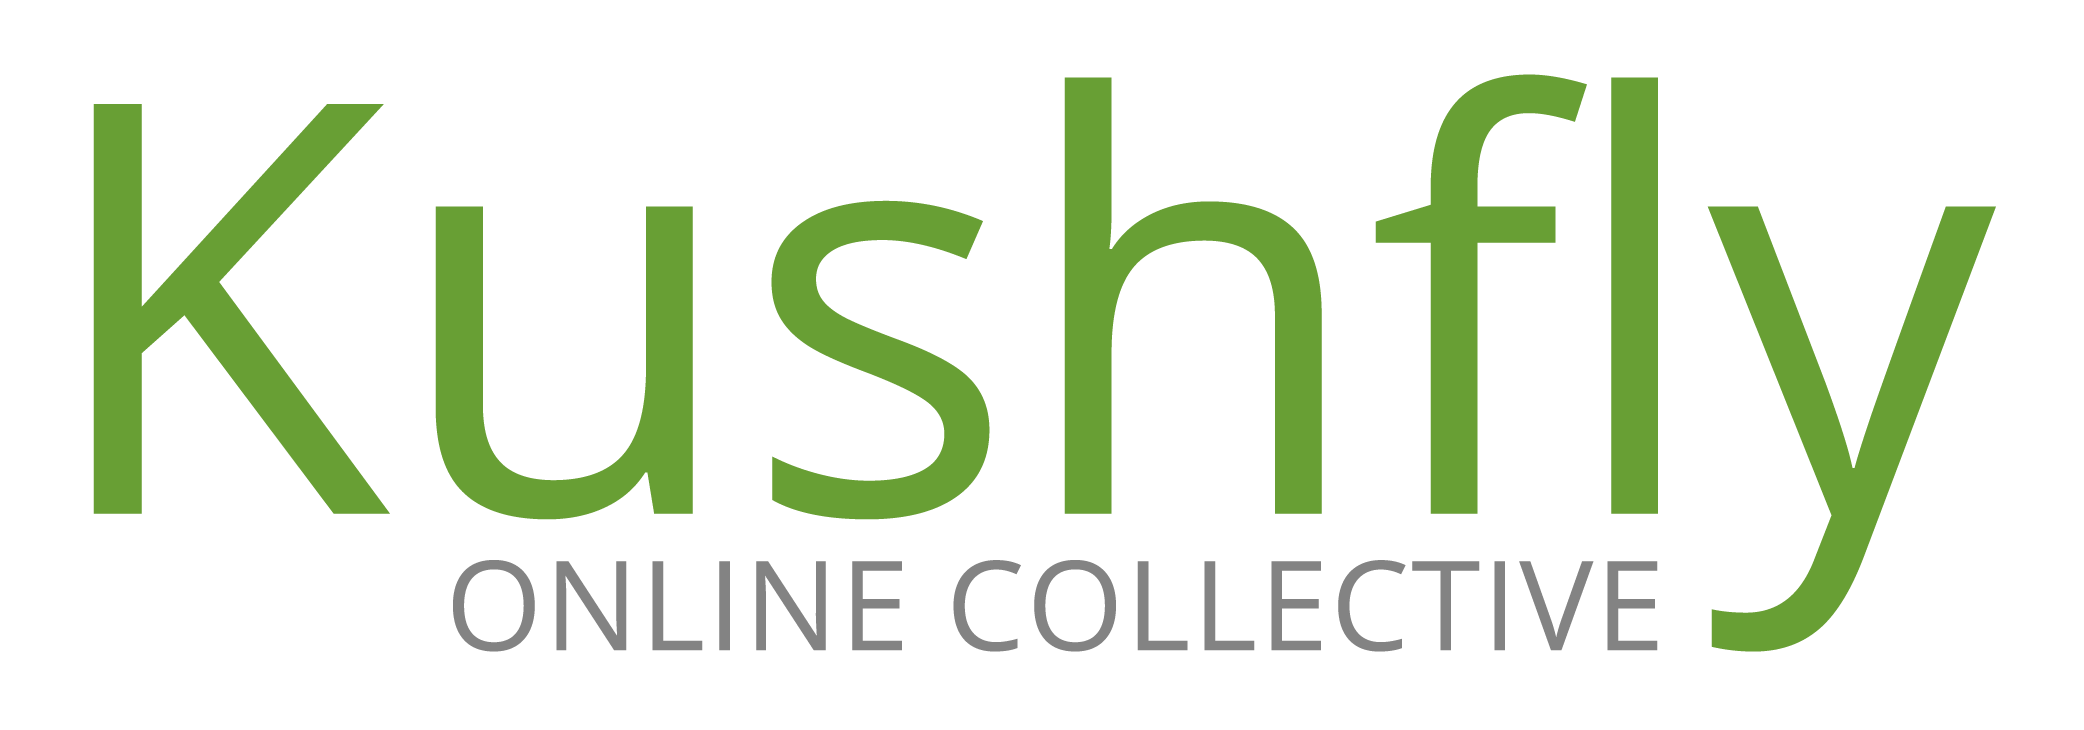 Kushfly Online Collective